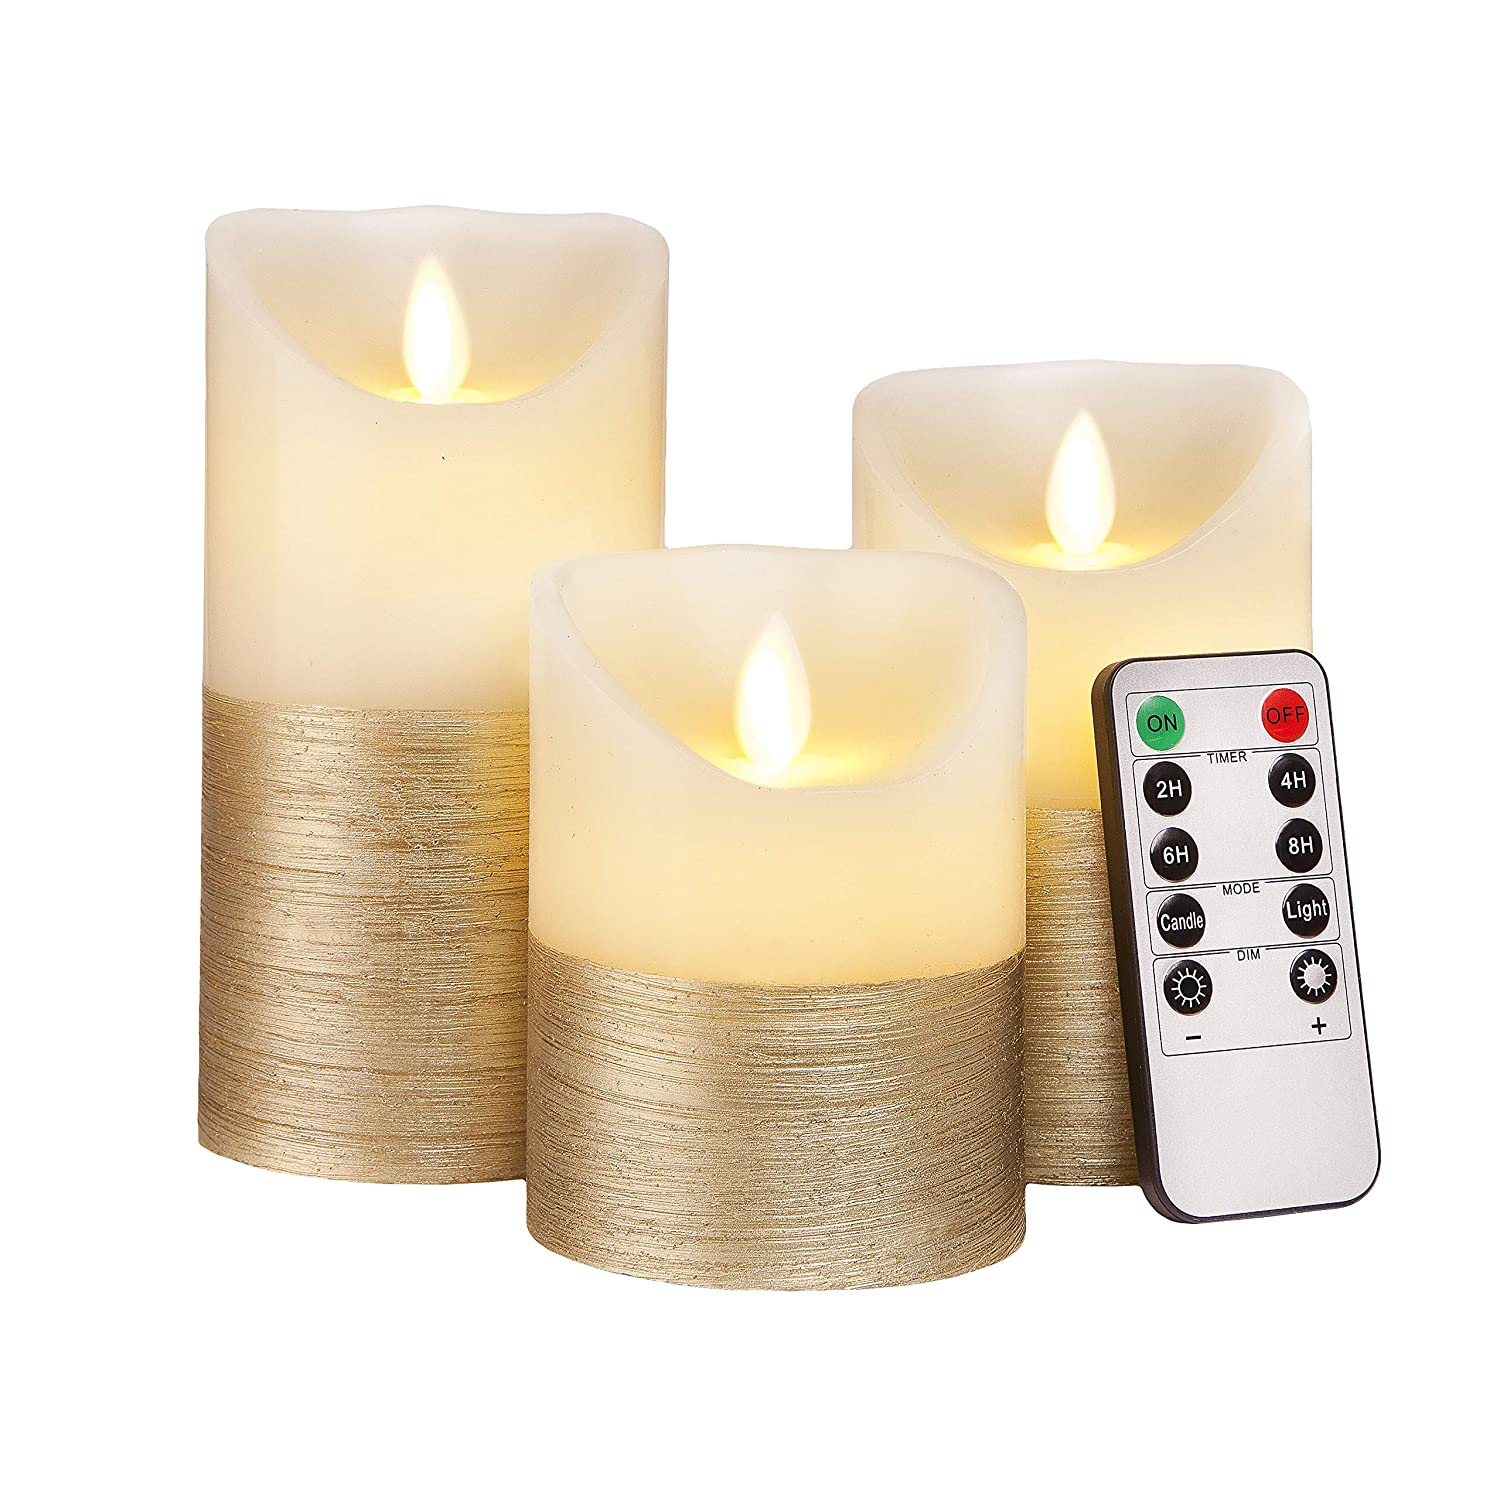 FLAMELESS Candles Flickering LED Battery Operated Electric Pillar Candle with Realistic Flicker Moving Flame with Remote Control & Timer, Real Wax Gold Trim Decorative Home Decor Gift for Women & Men